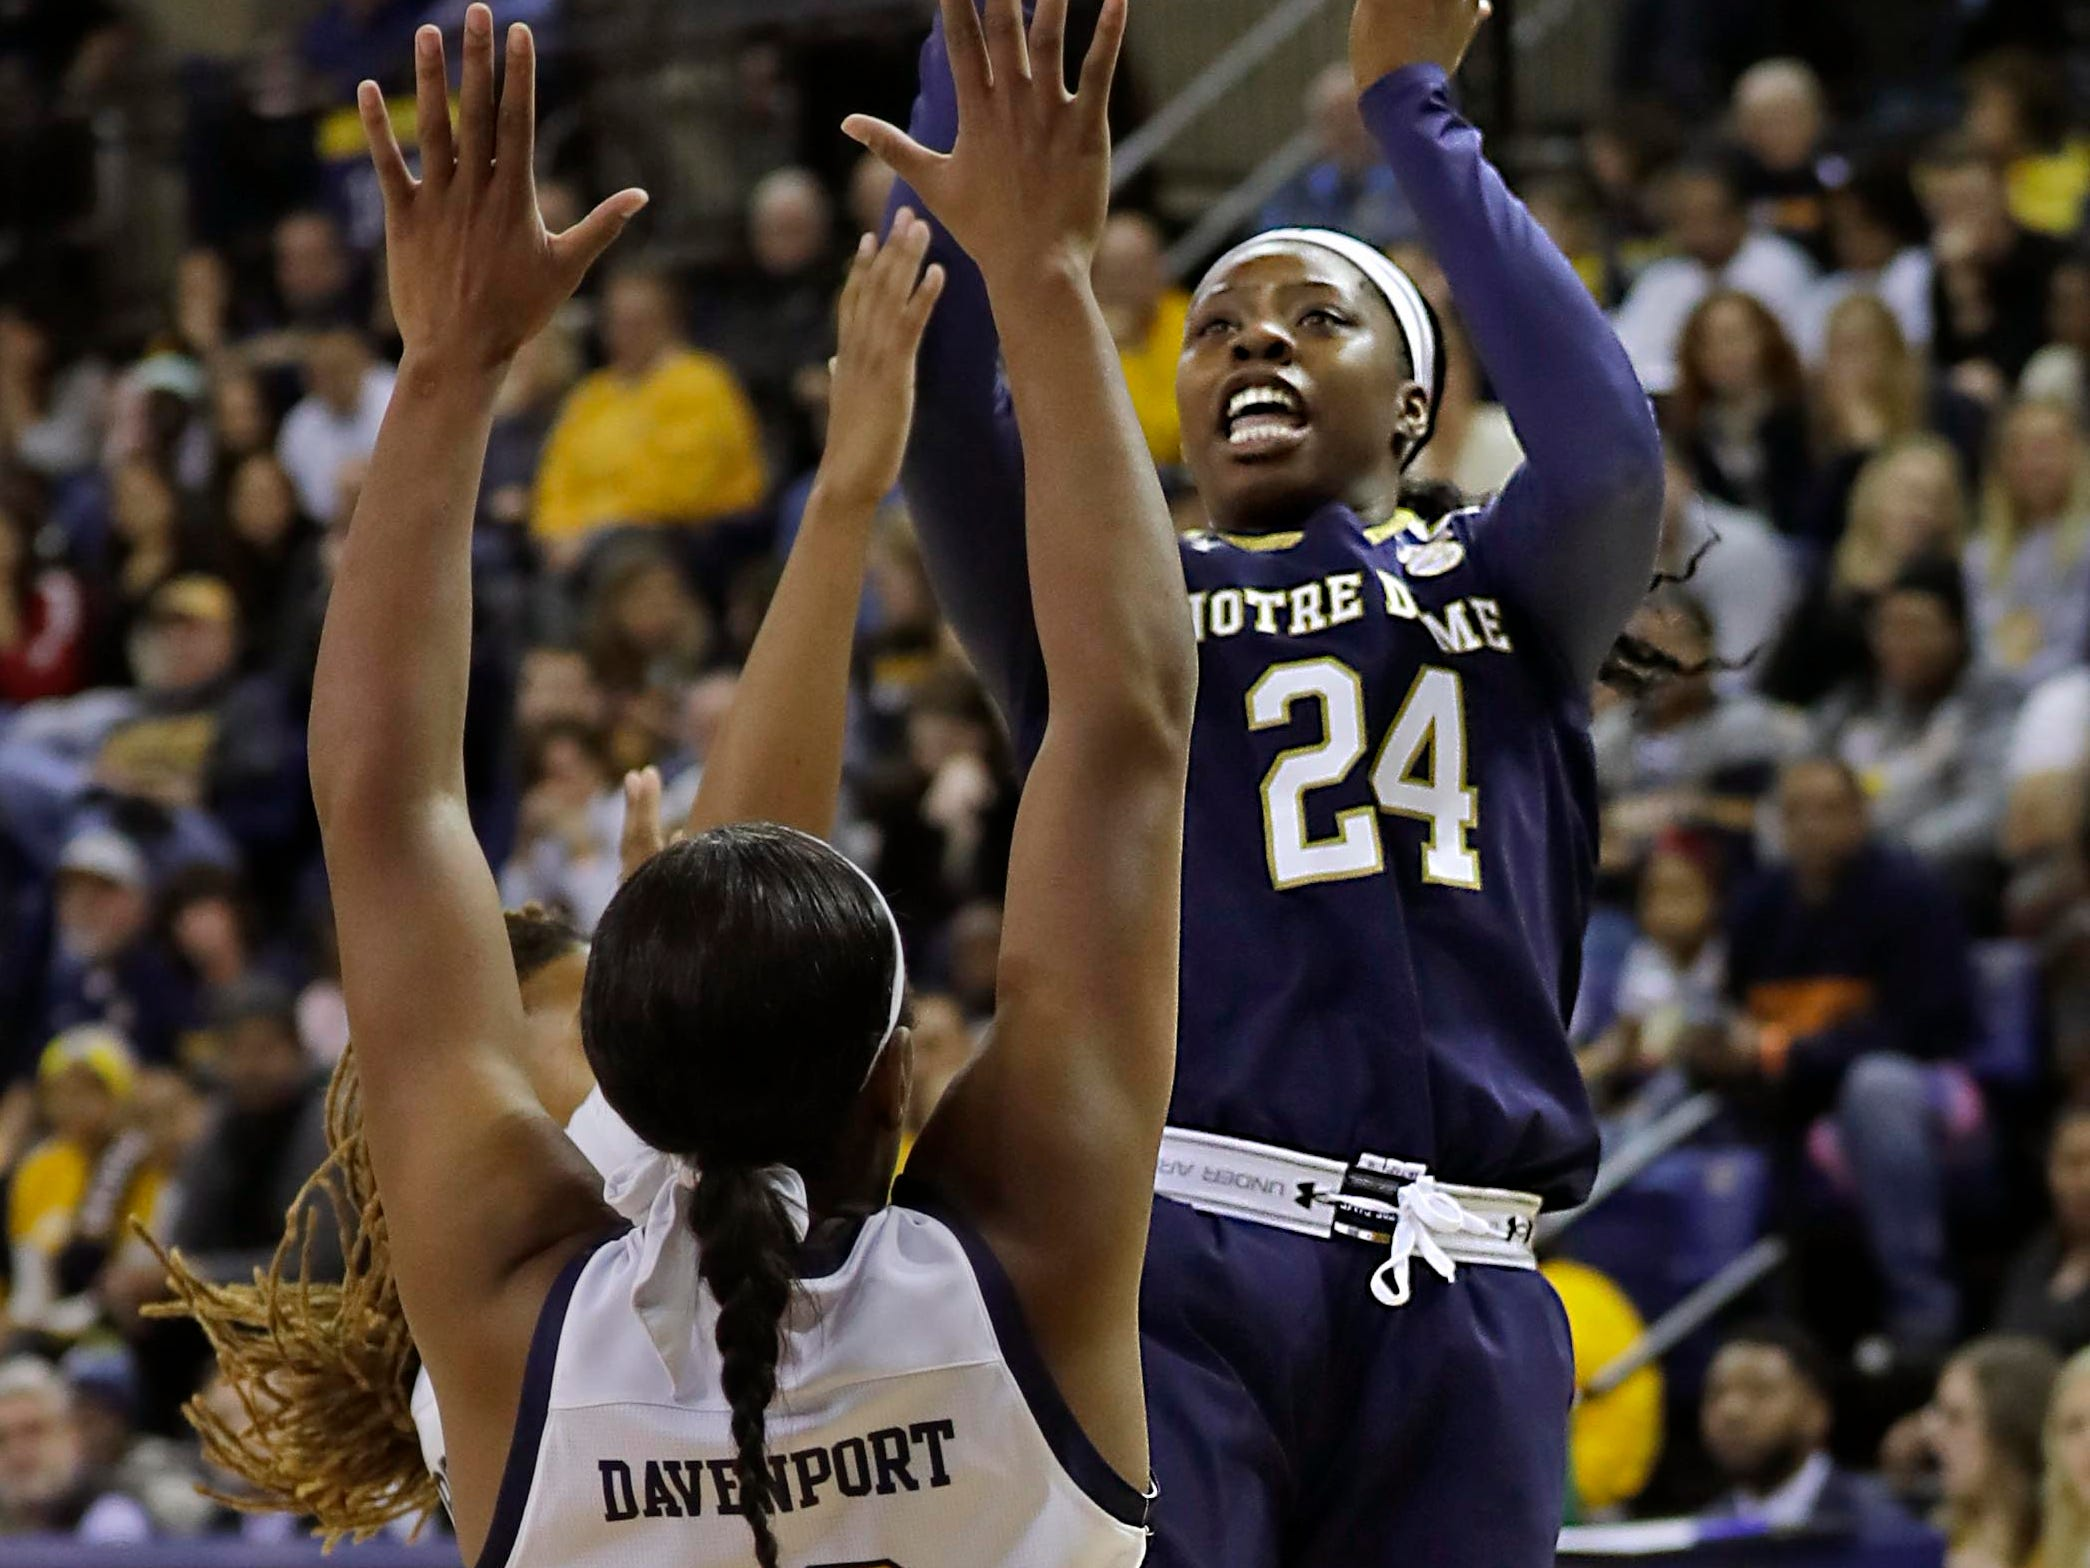 Notre Dame Fighting Irish guard Arike Ogunbowale (24) hits a jumper against Marquette Golden Eagles forward Erika Davenport (12) during the women's basketball  game  between Marquette and Notre Dame. Notre Dame, the the defending national champion, which won the game 87-63, is led by former DSHA star Arike Ogunbowale. MU is also a top-25 team expected to win the Big East.   MILWAUKEE JOURNAL SENTINEL/RICK WOOD ORG XMIT: 20097356A